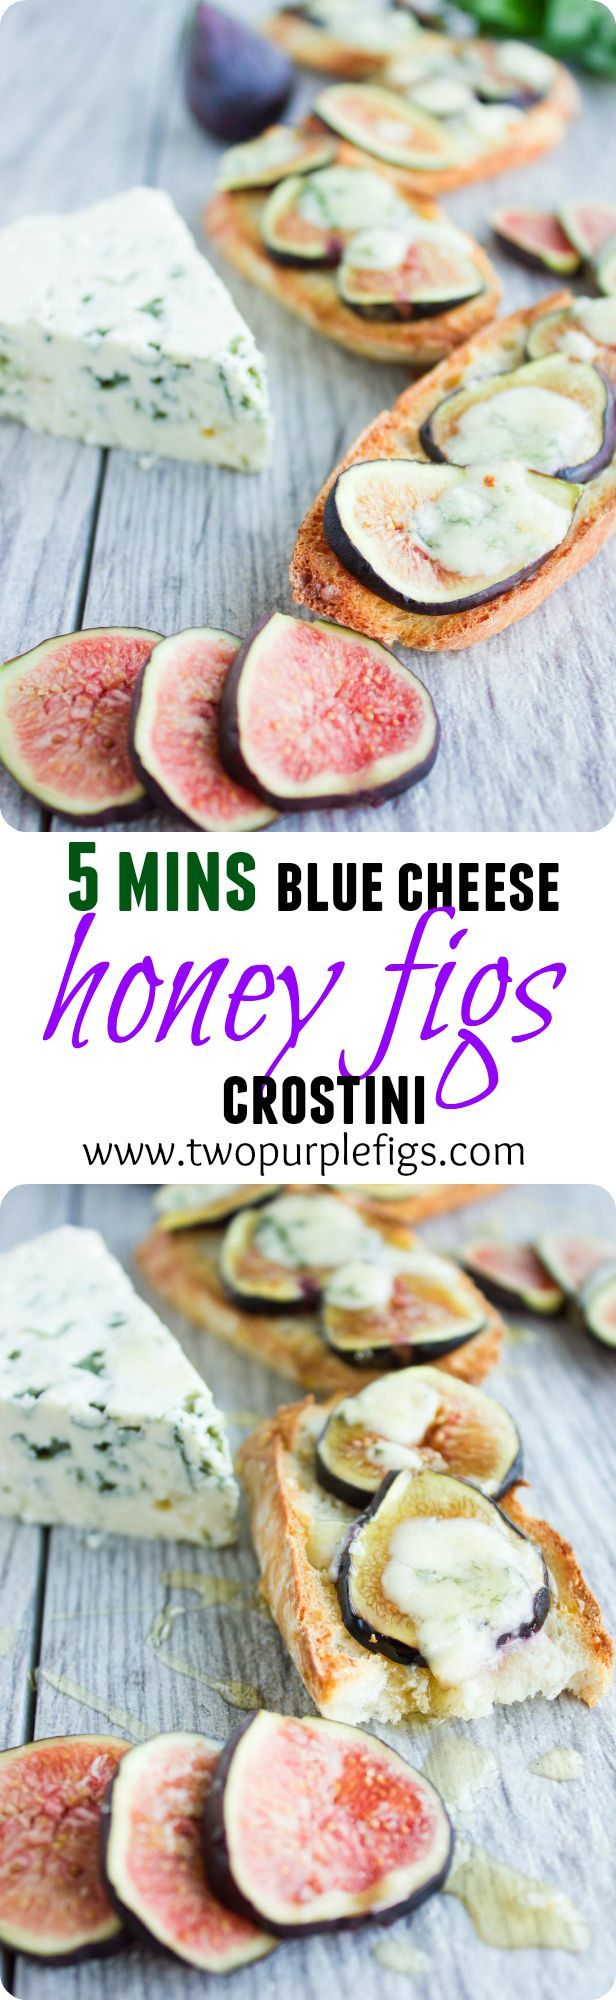 This is a 5 min. blue cheesy, sweet, crunchy, fruity and an easy way to serve up crostini. Impress your tastebuds with those fruity little bites! www.twopurplefigs.com